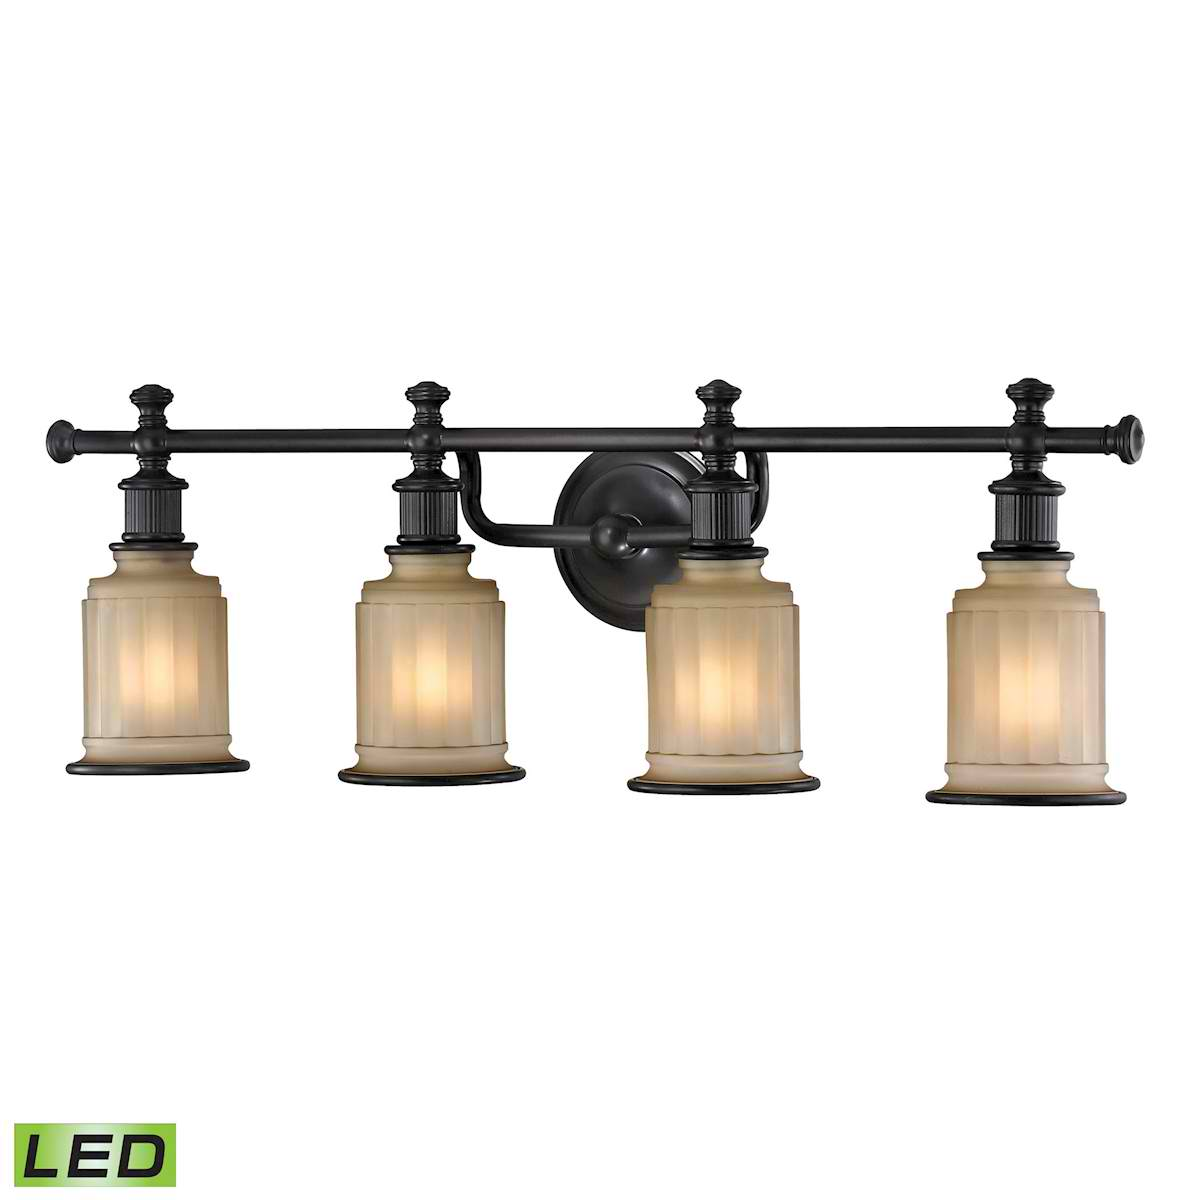 Acadia Collection 4 Light Bath in Oil Rubbed Bronze - LED, 800 Lumens (3200 Lumens Total) with Full